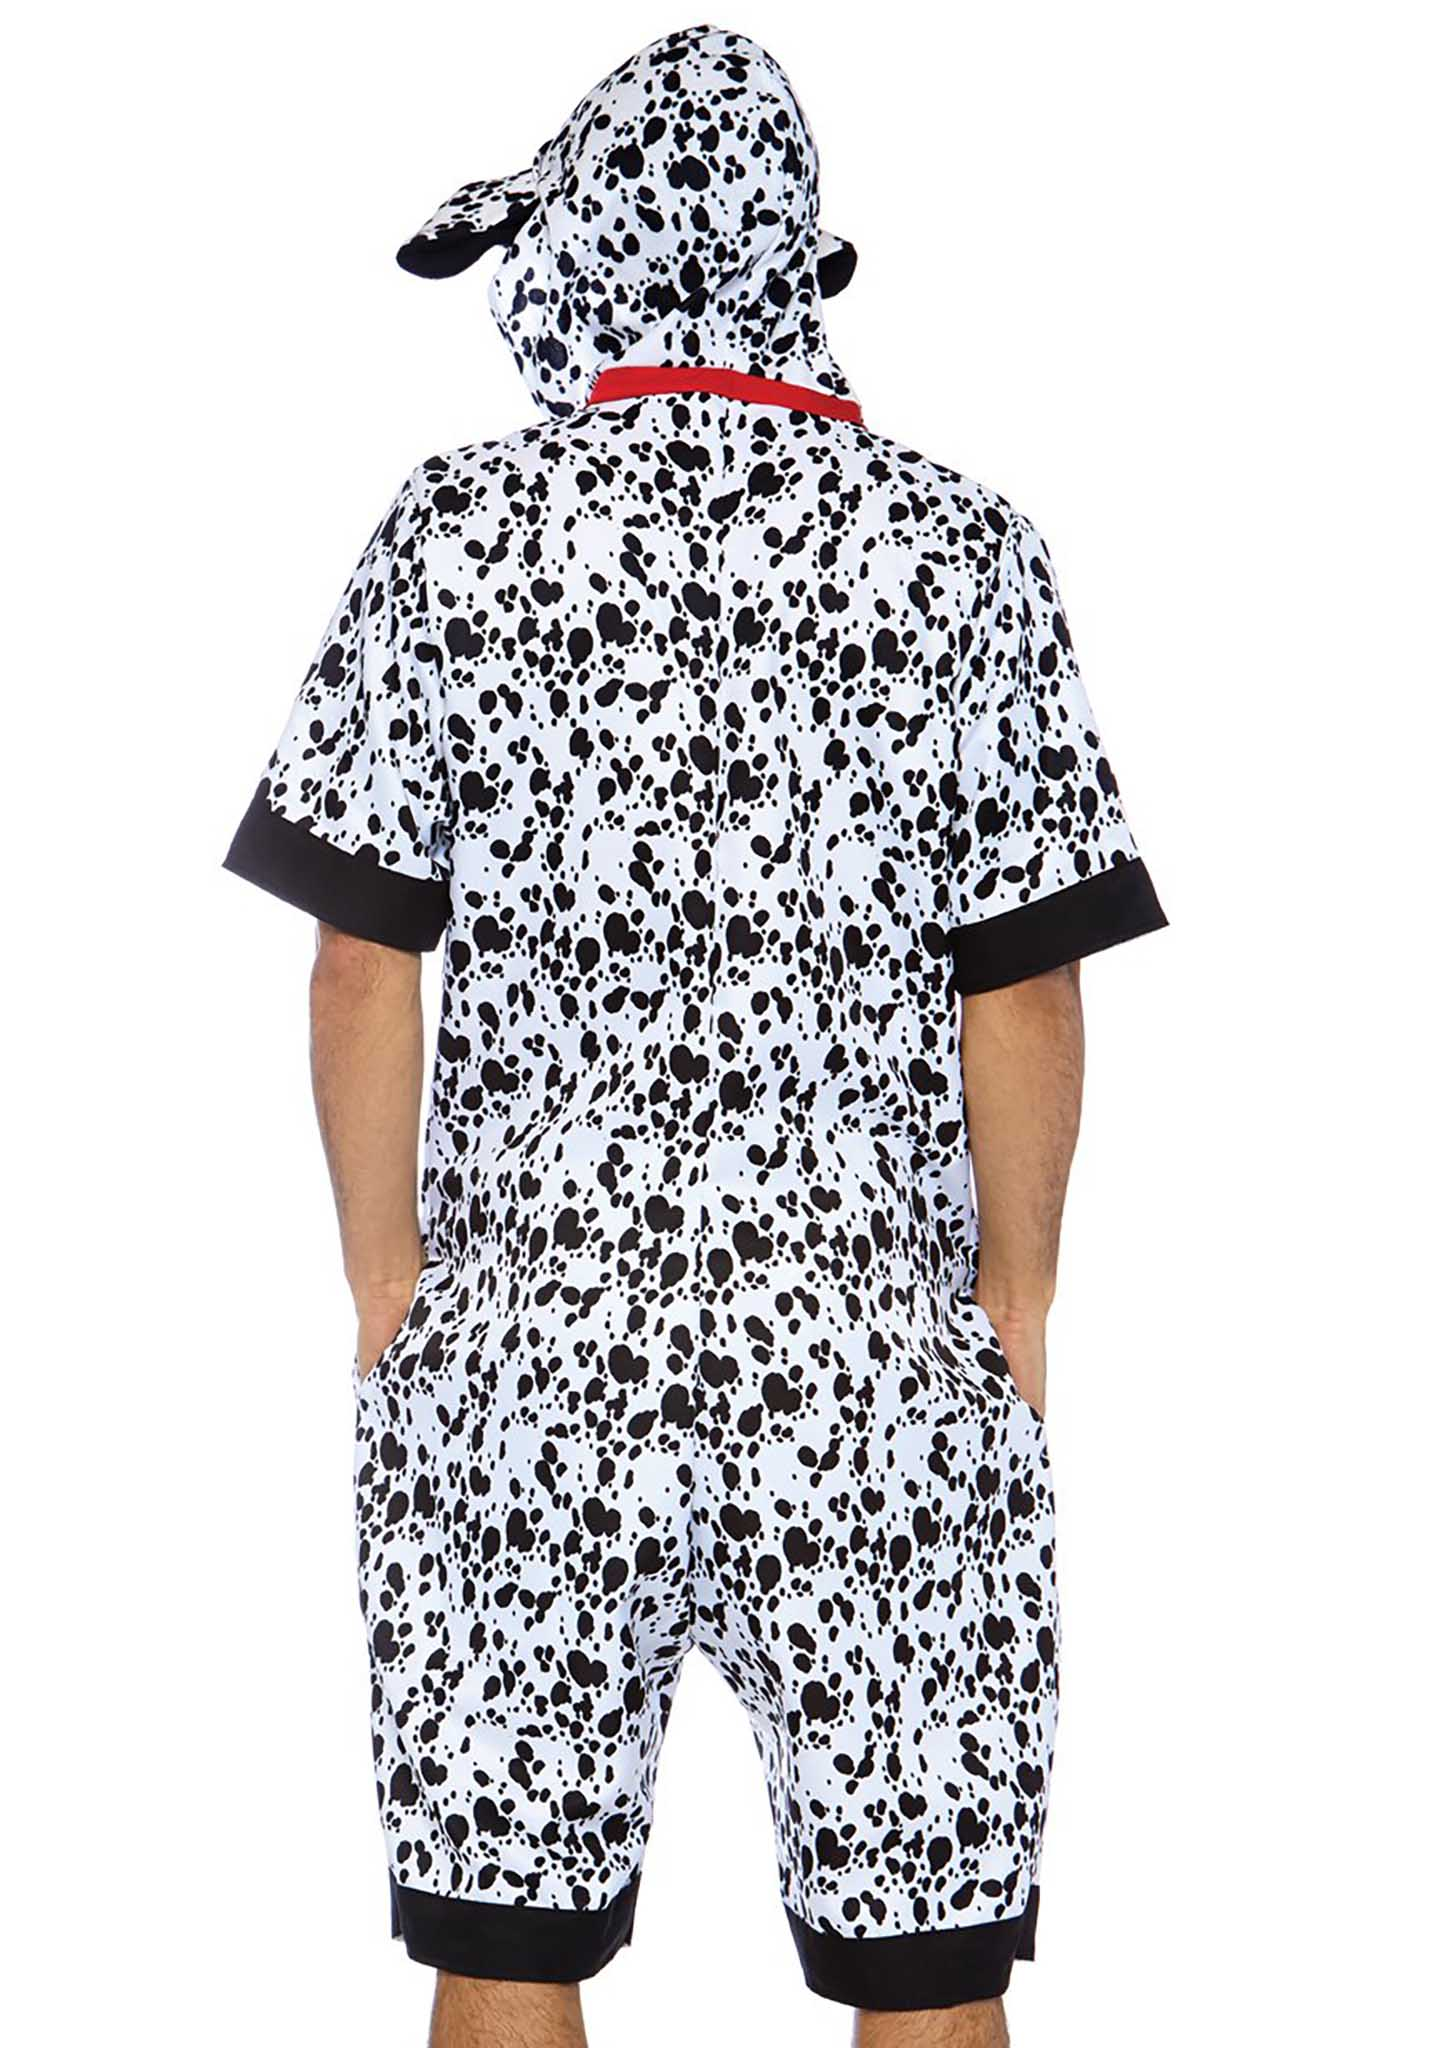 Dalmatian Dog Jumpsuit